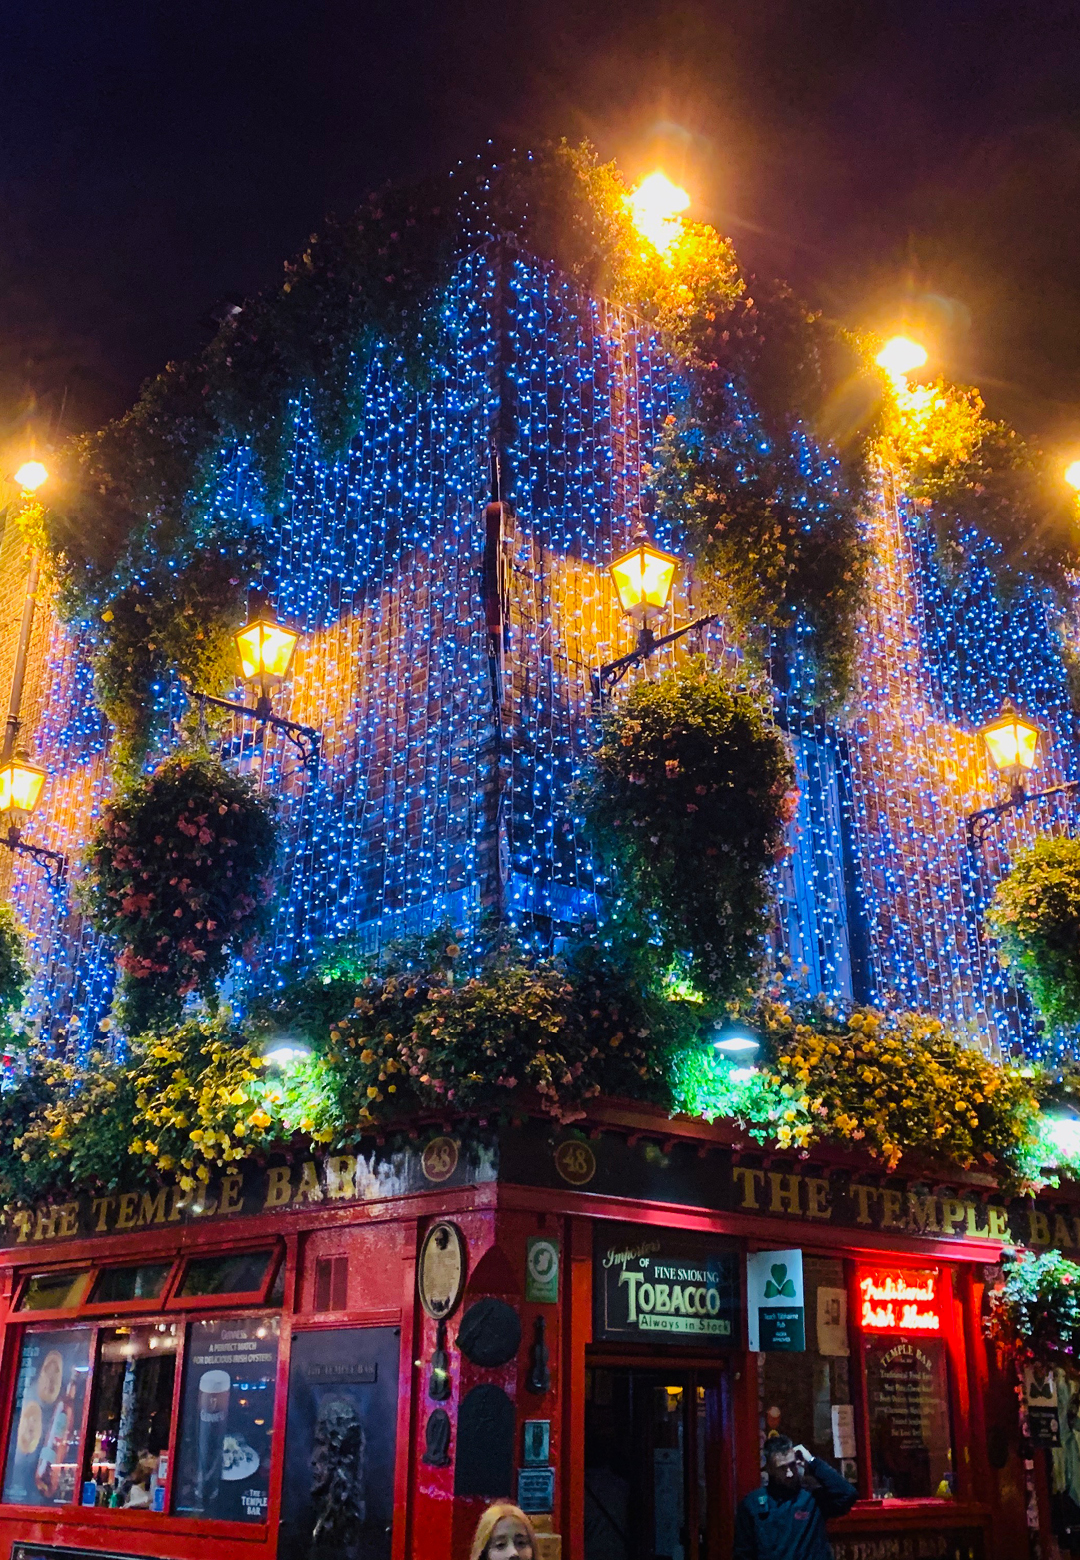 The famous Temple Bar by night | Dublin | STIRworld